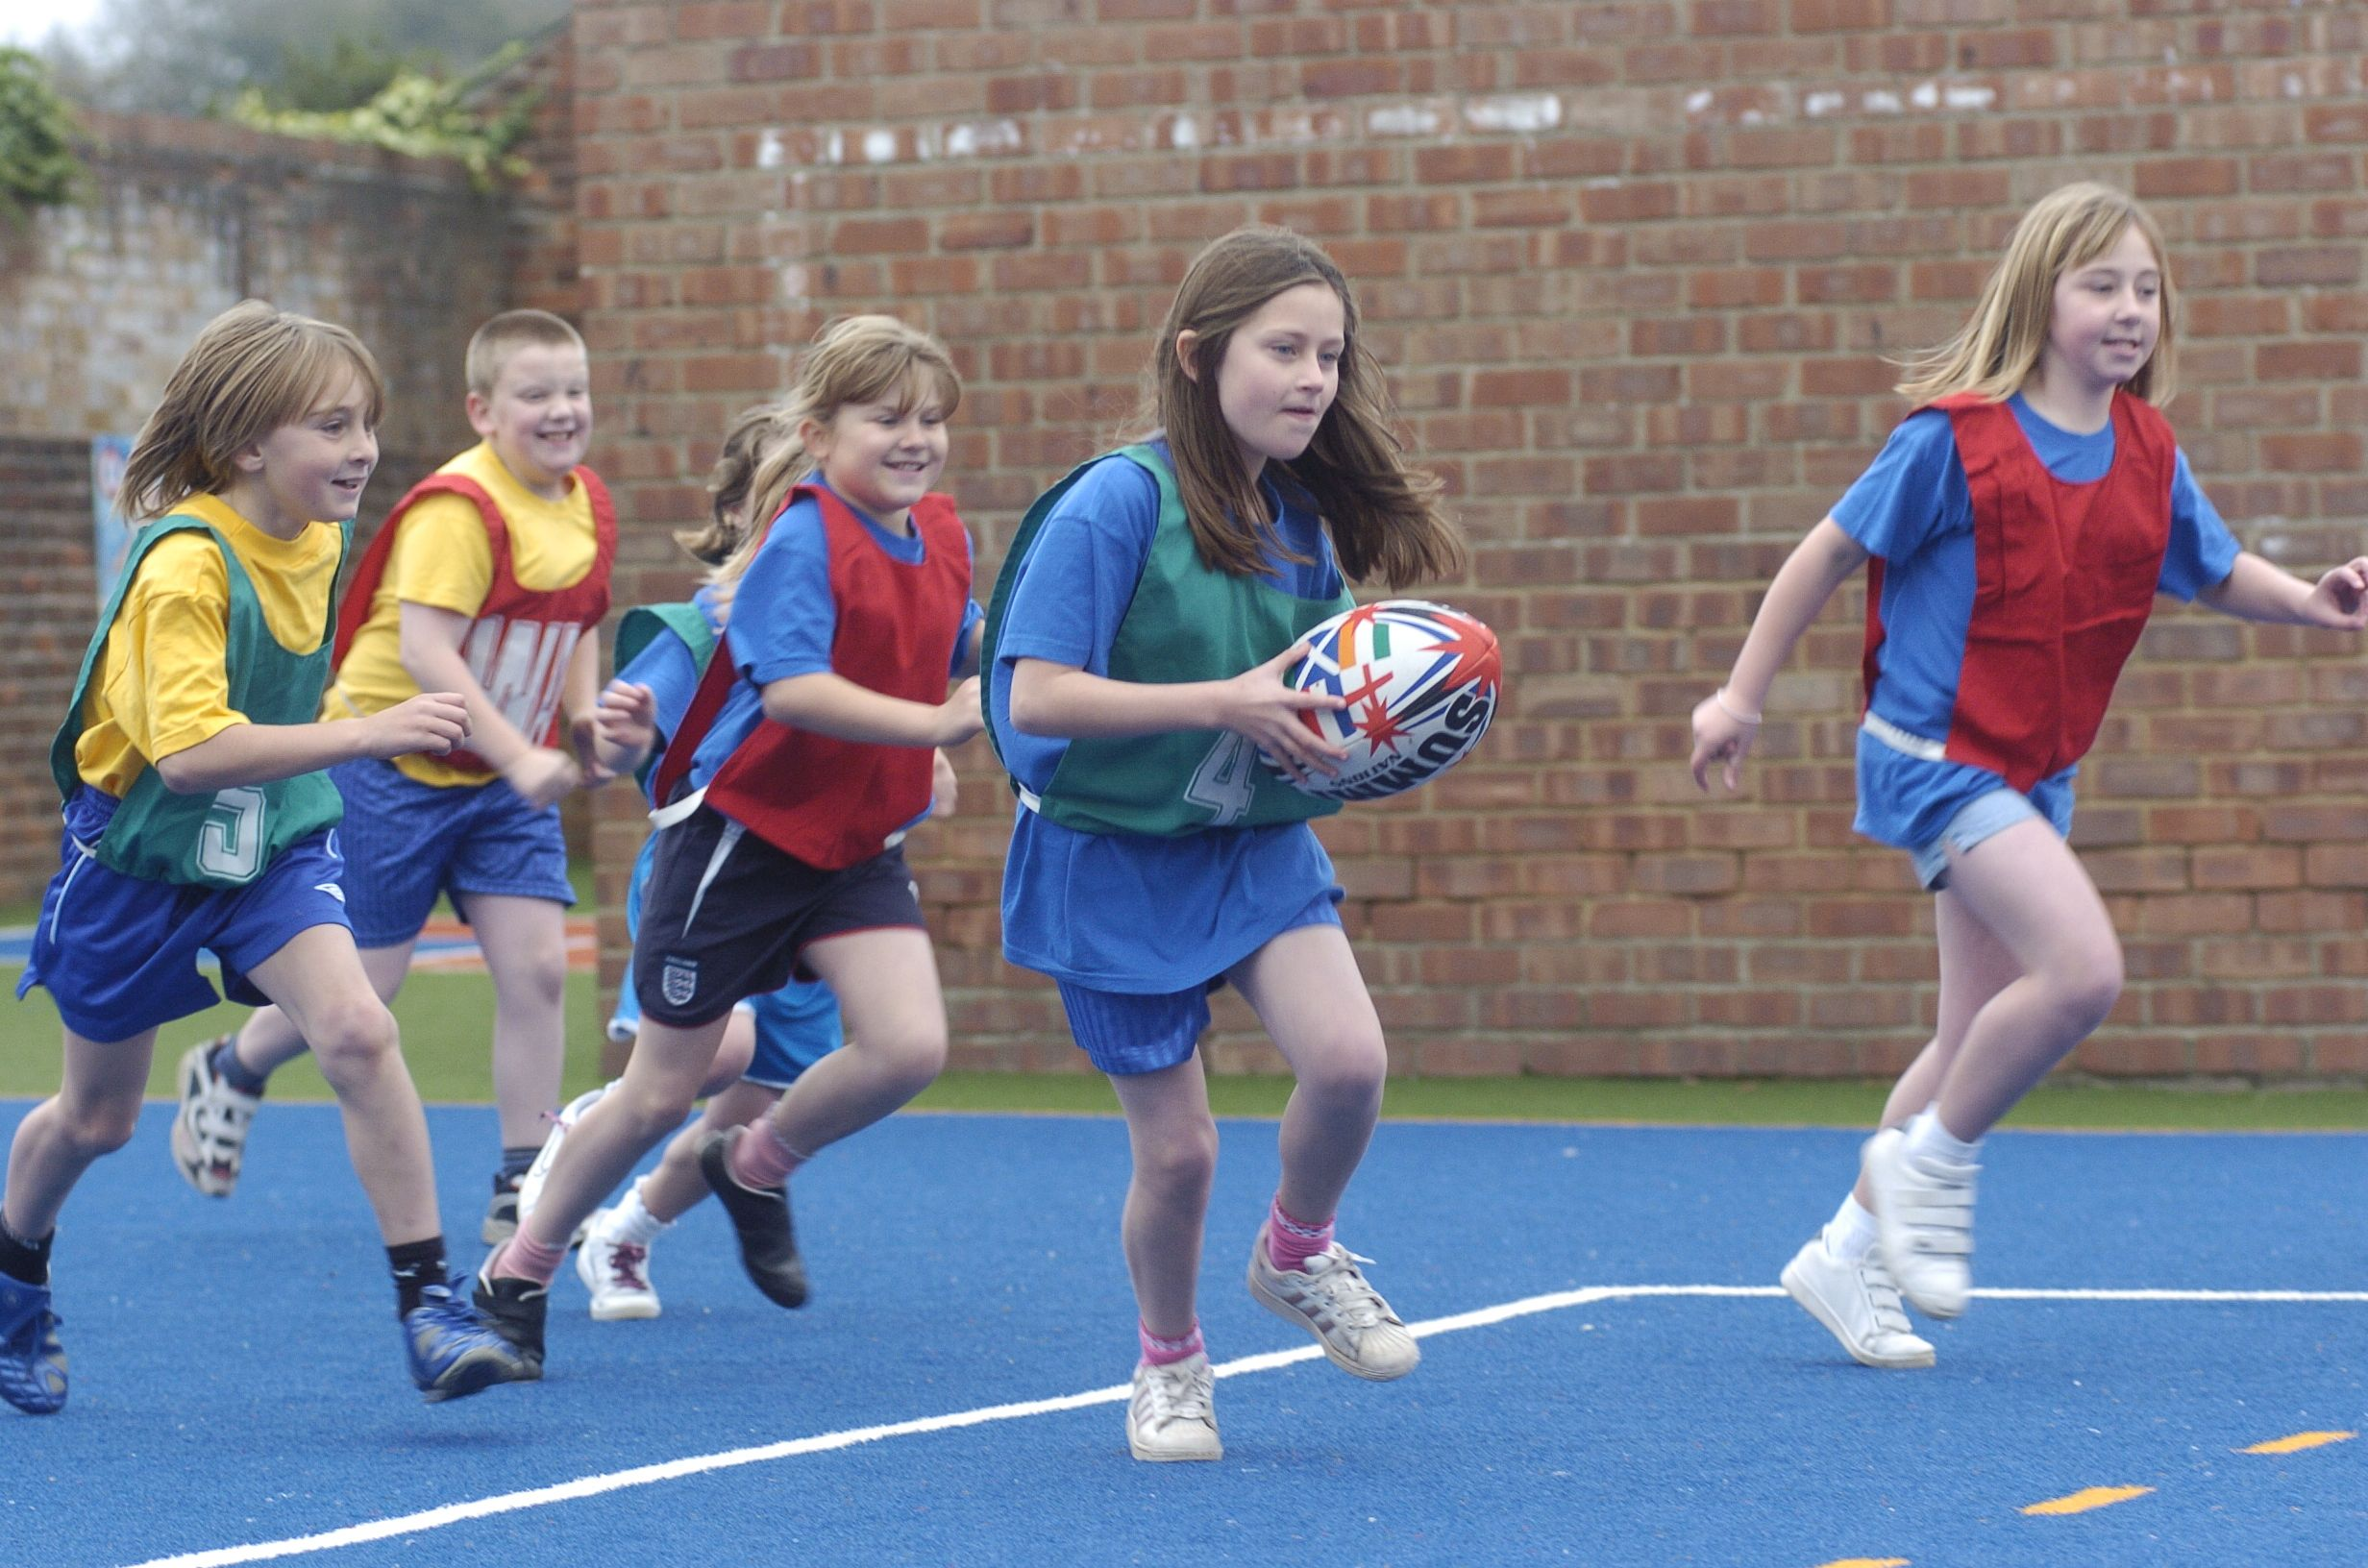 If sport really benefits all communities, where and what is the evidence?